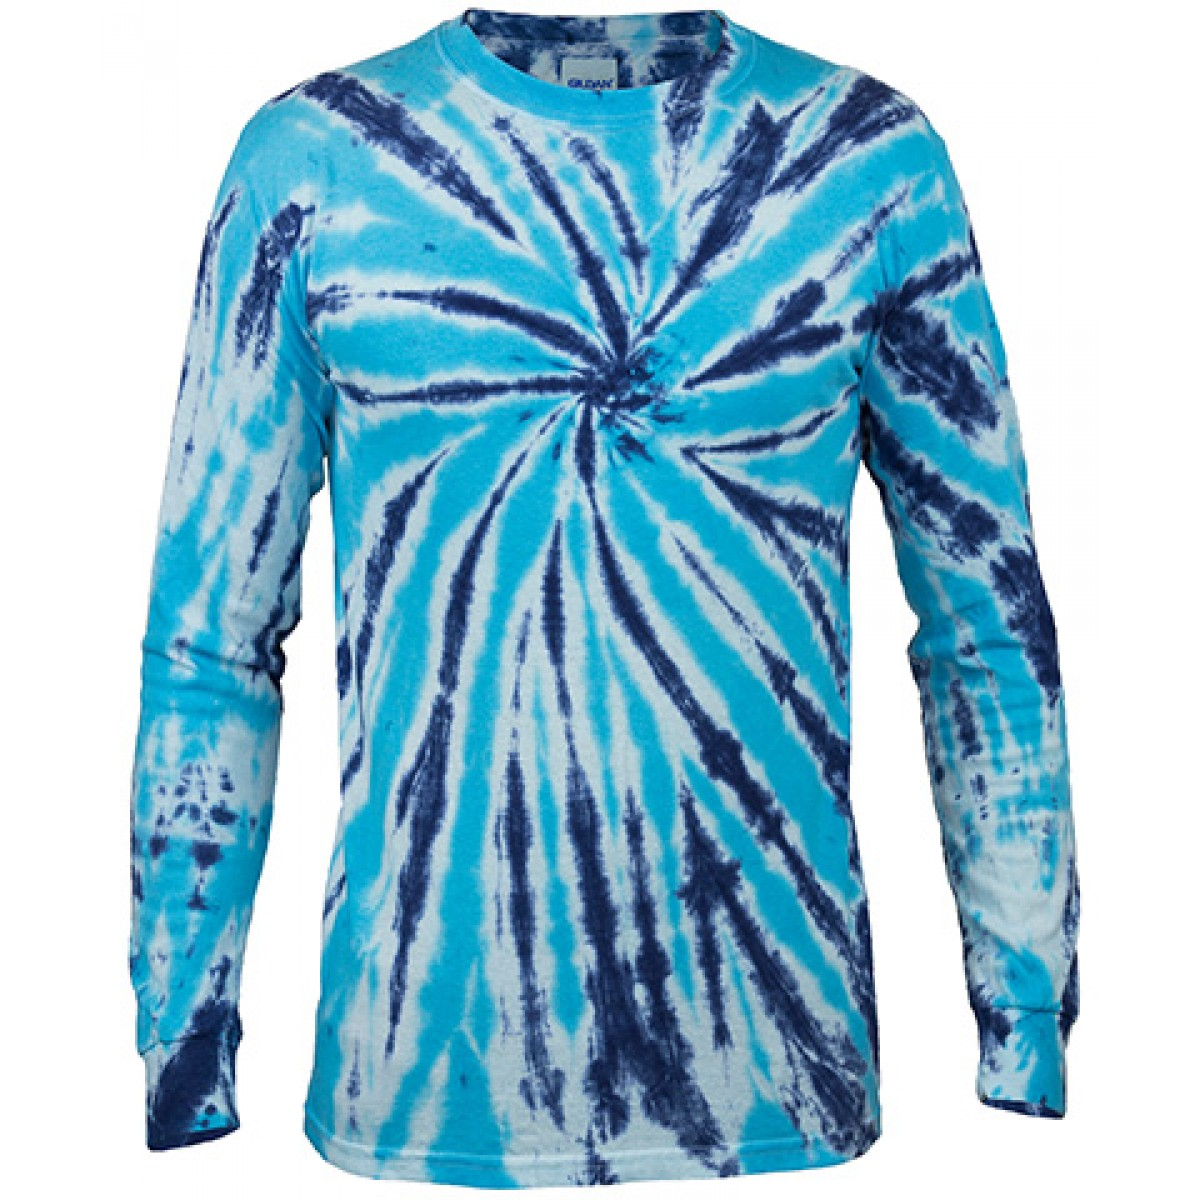 Multi Color Tie-Dye Long Sleeve Shirt -Royal Blue-3XL